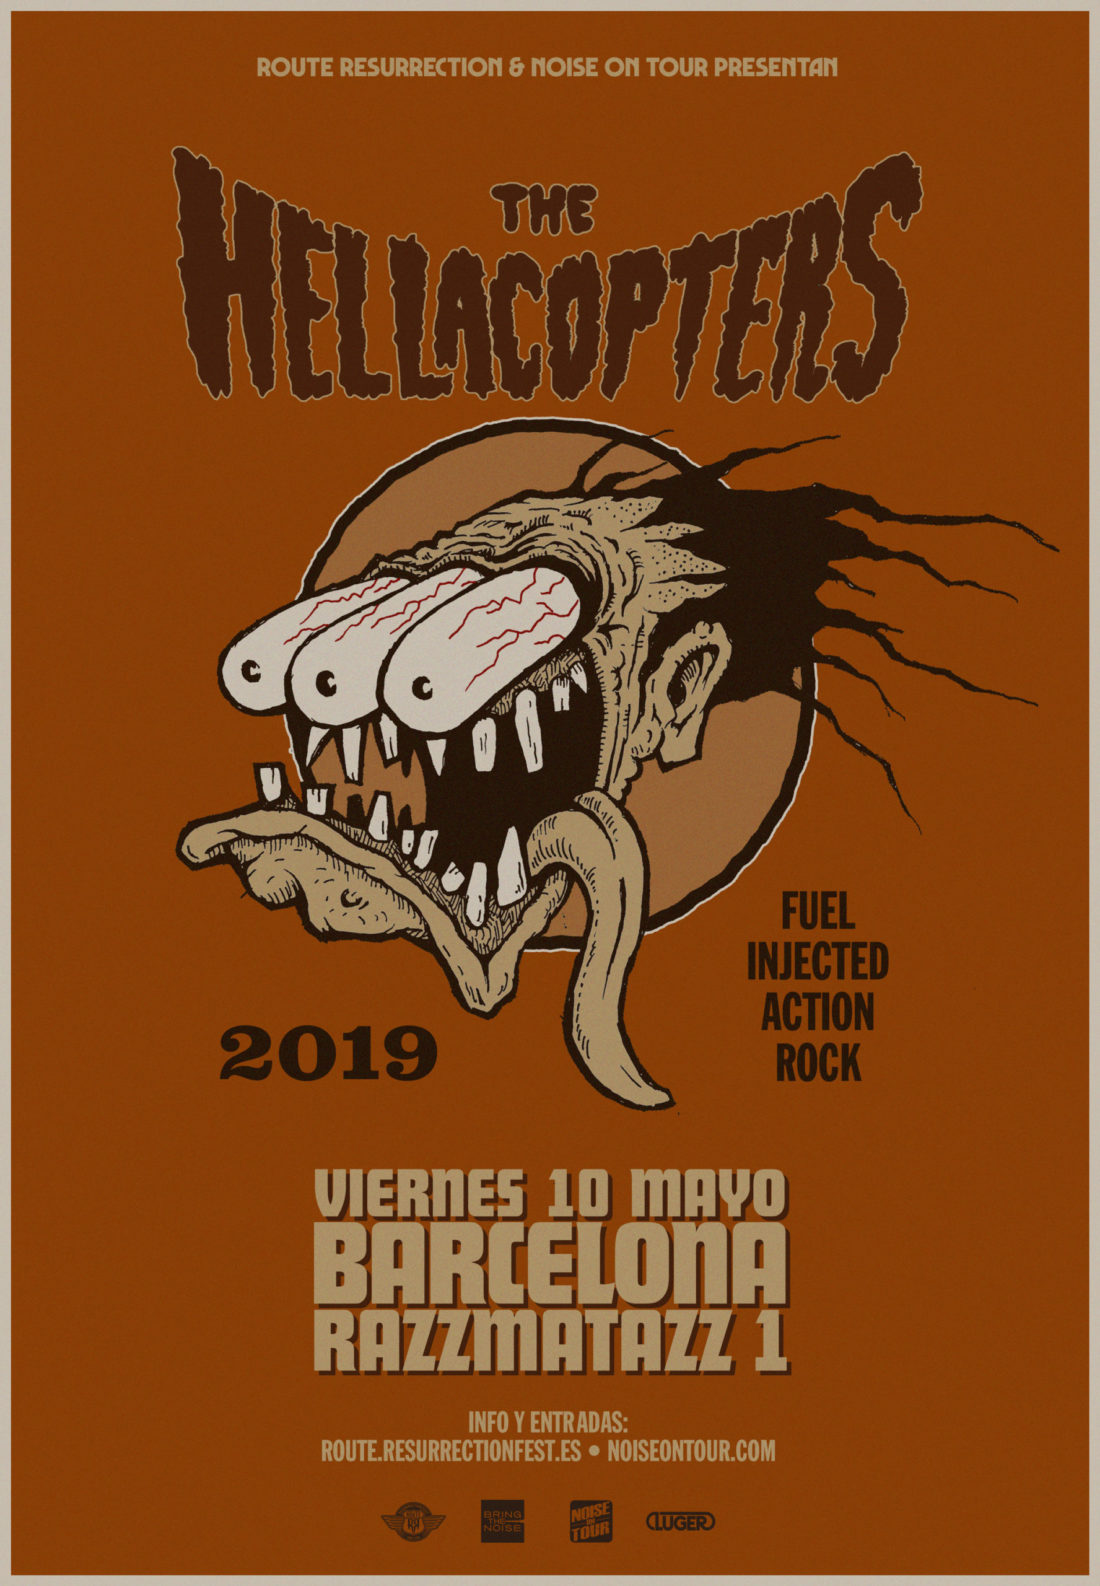 Nueva gira Route Resurrection: The Hellacopters